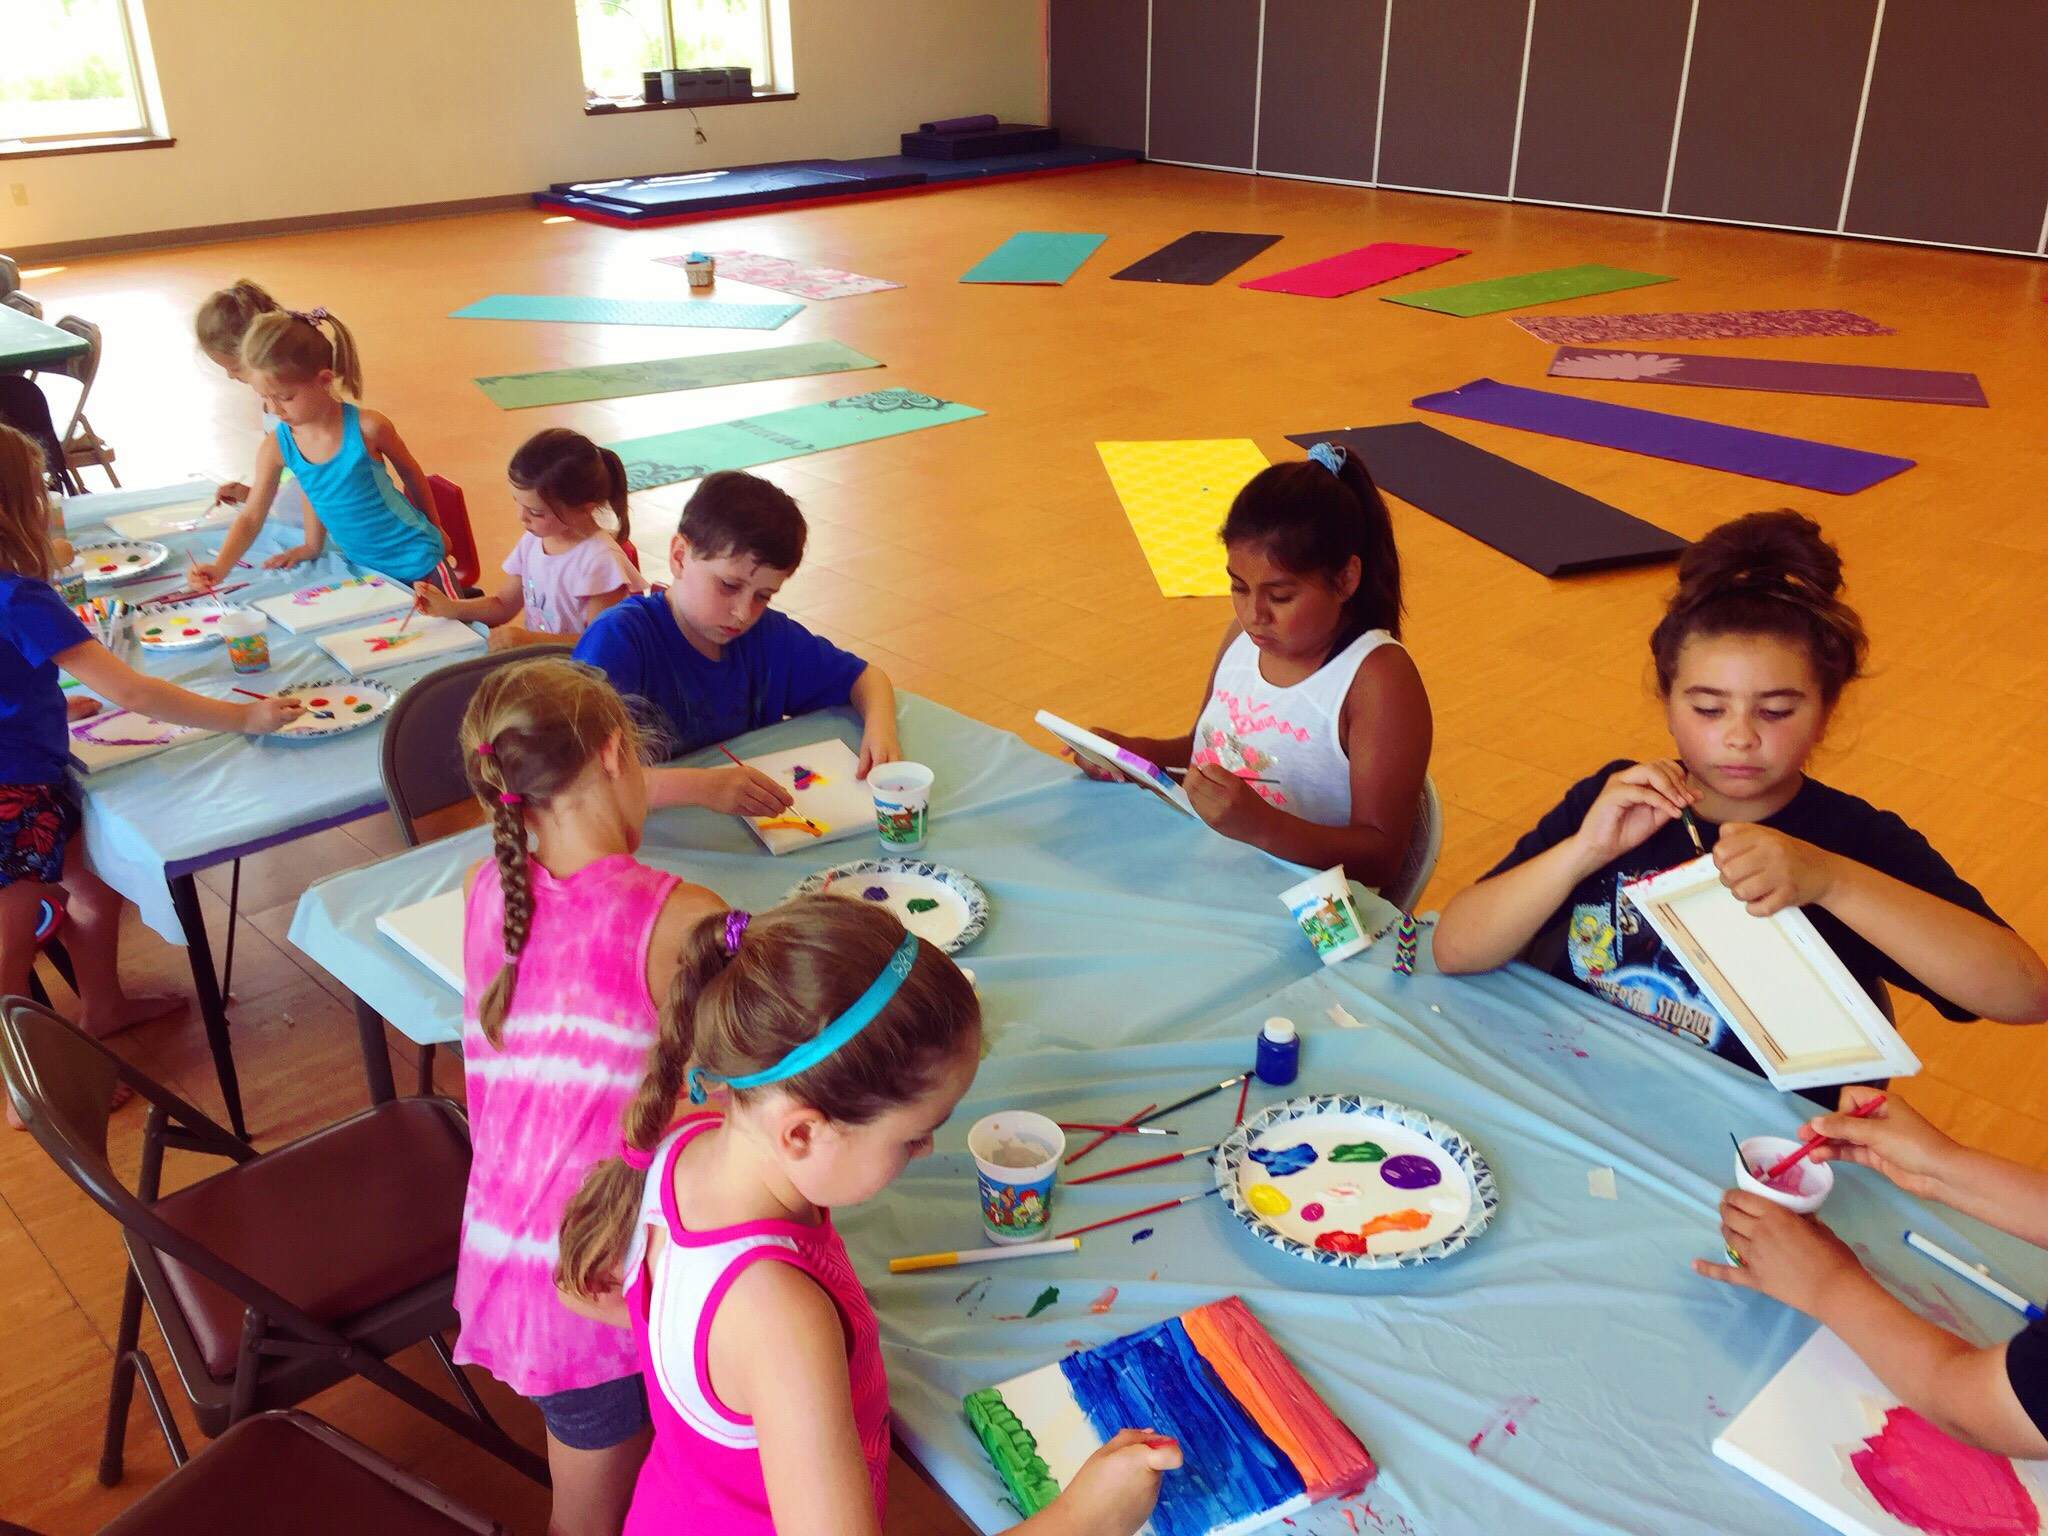 Yoga art! A mindful moment combined with lots of creativity.